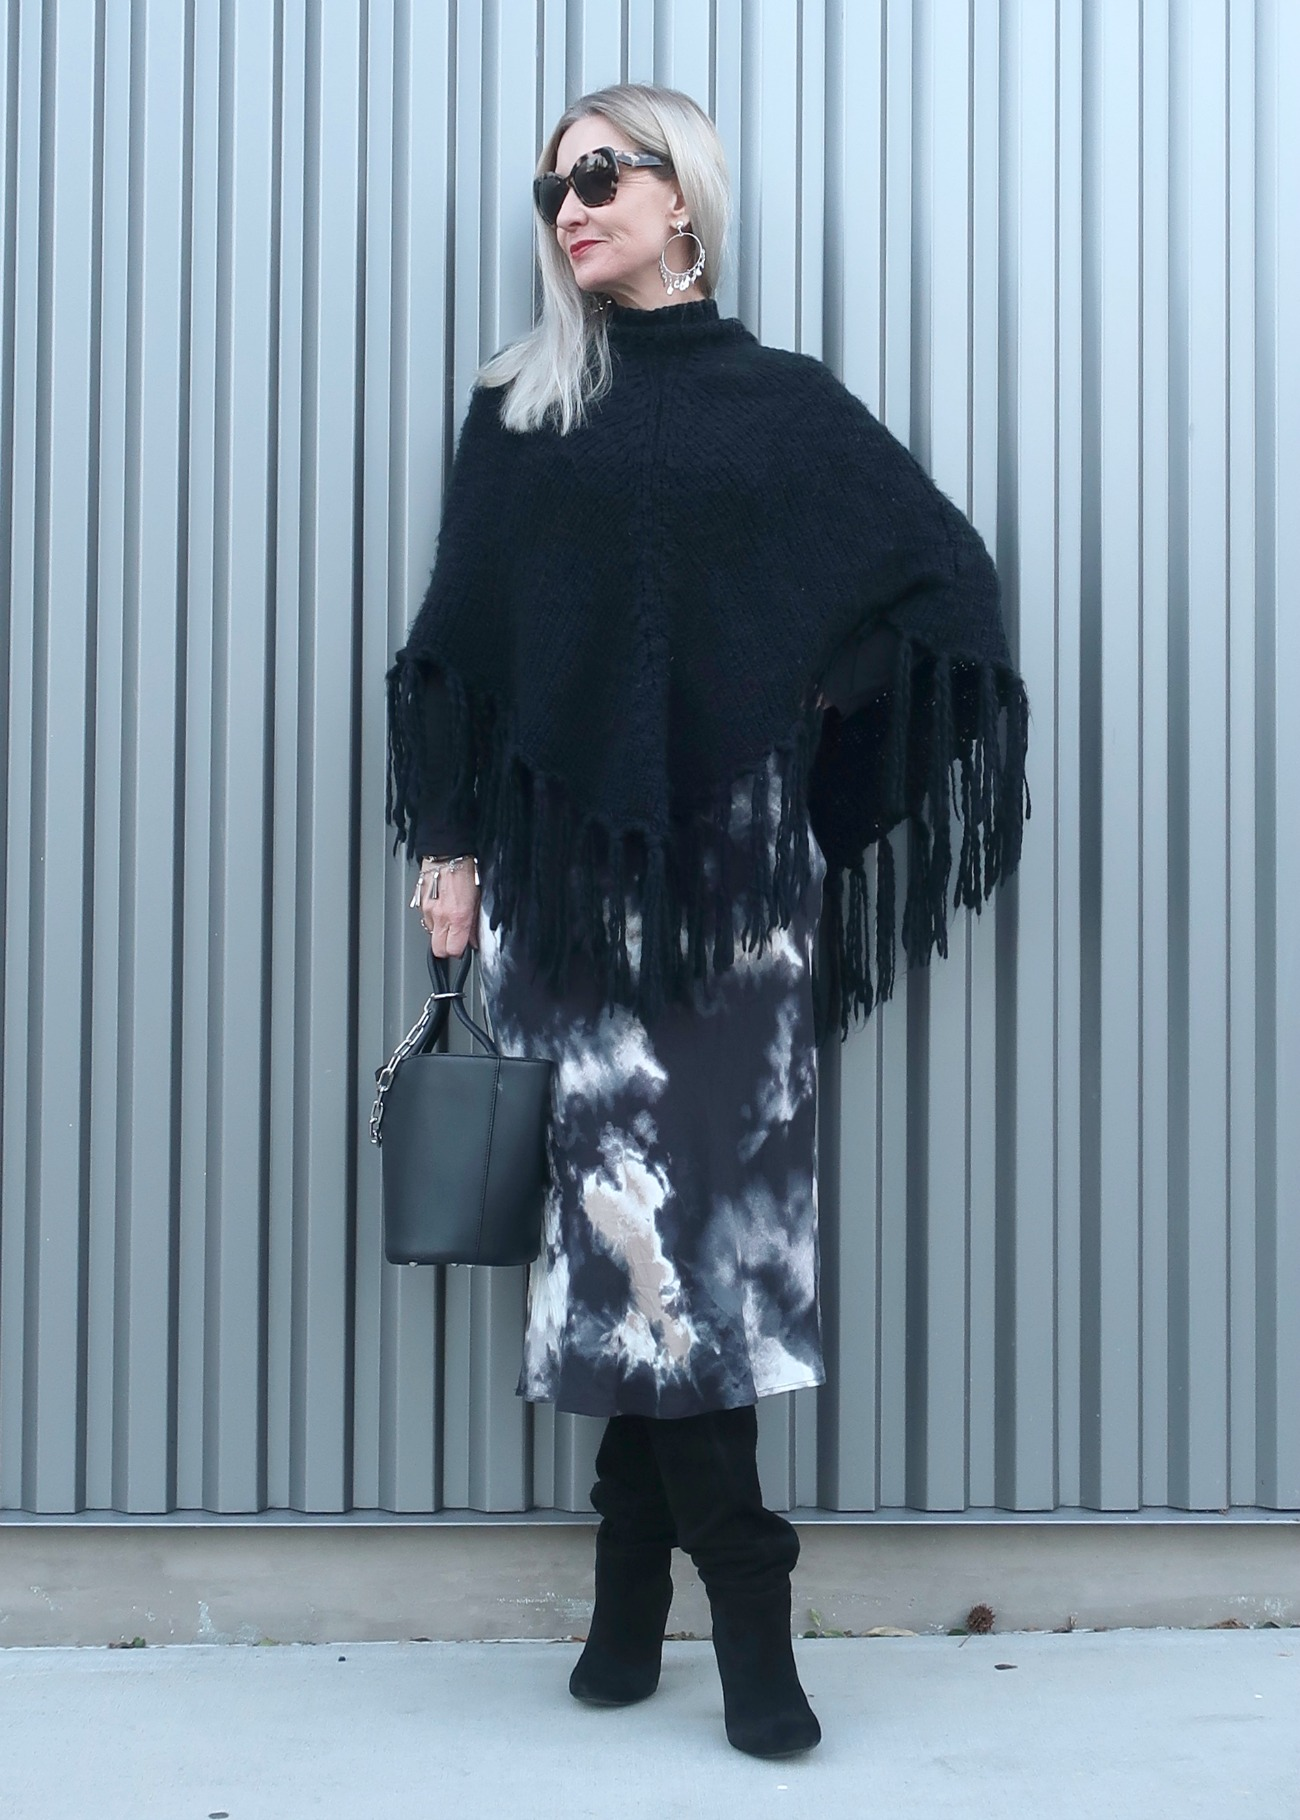 poncho, midi skirt, suede boots